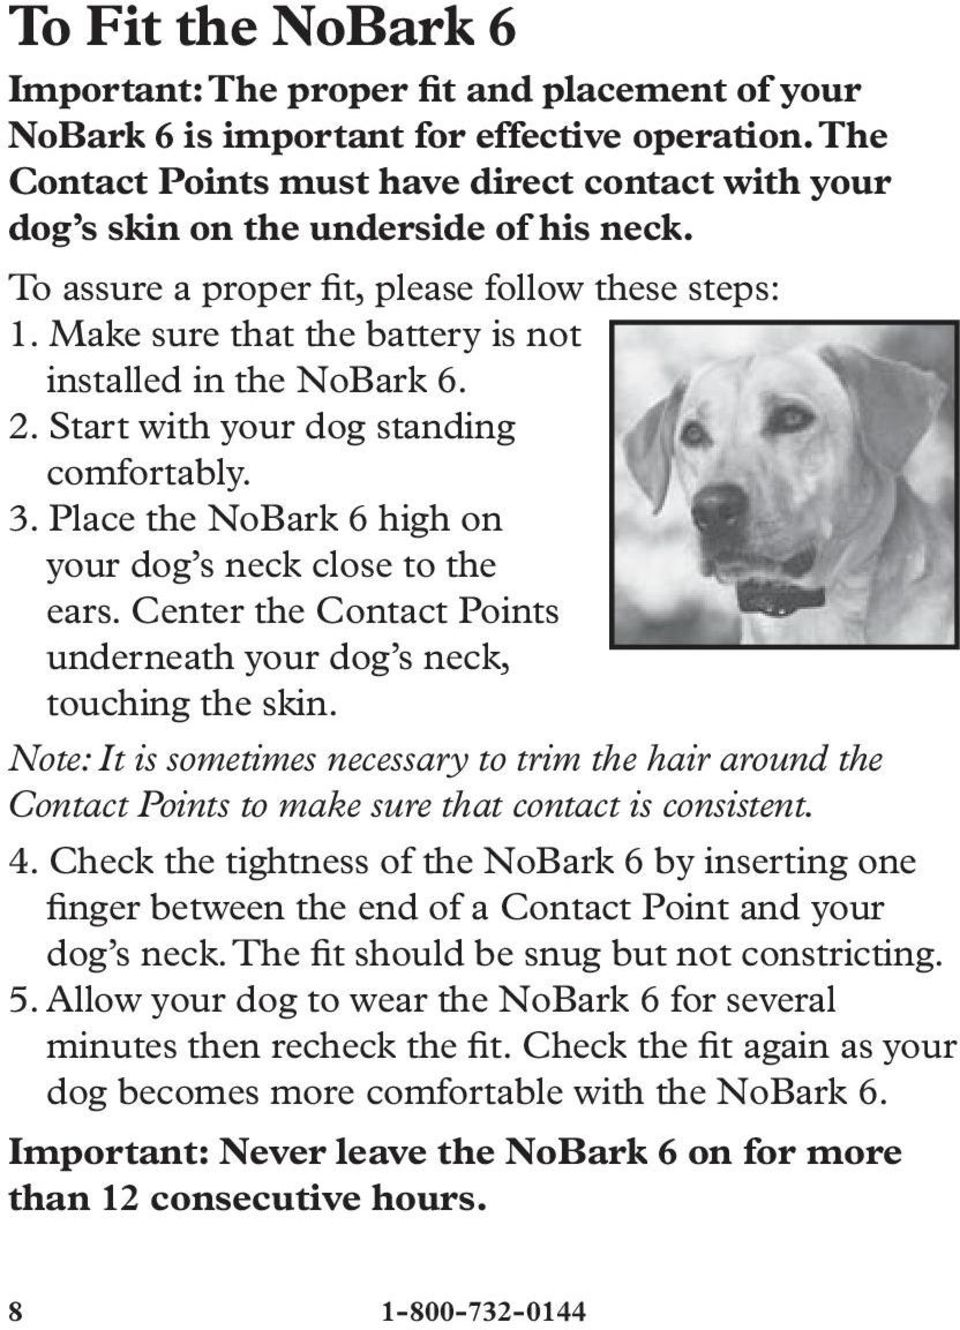 Make sure that the battery is not installed in the NoBark 6. 2. Start with your dog standing comfortably. 3. Place the NoBark 6 high on your dog s neck close to the ears.